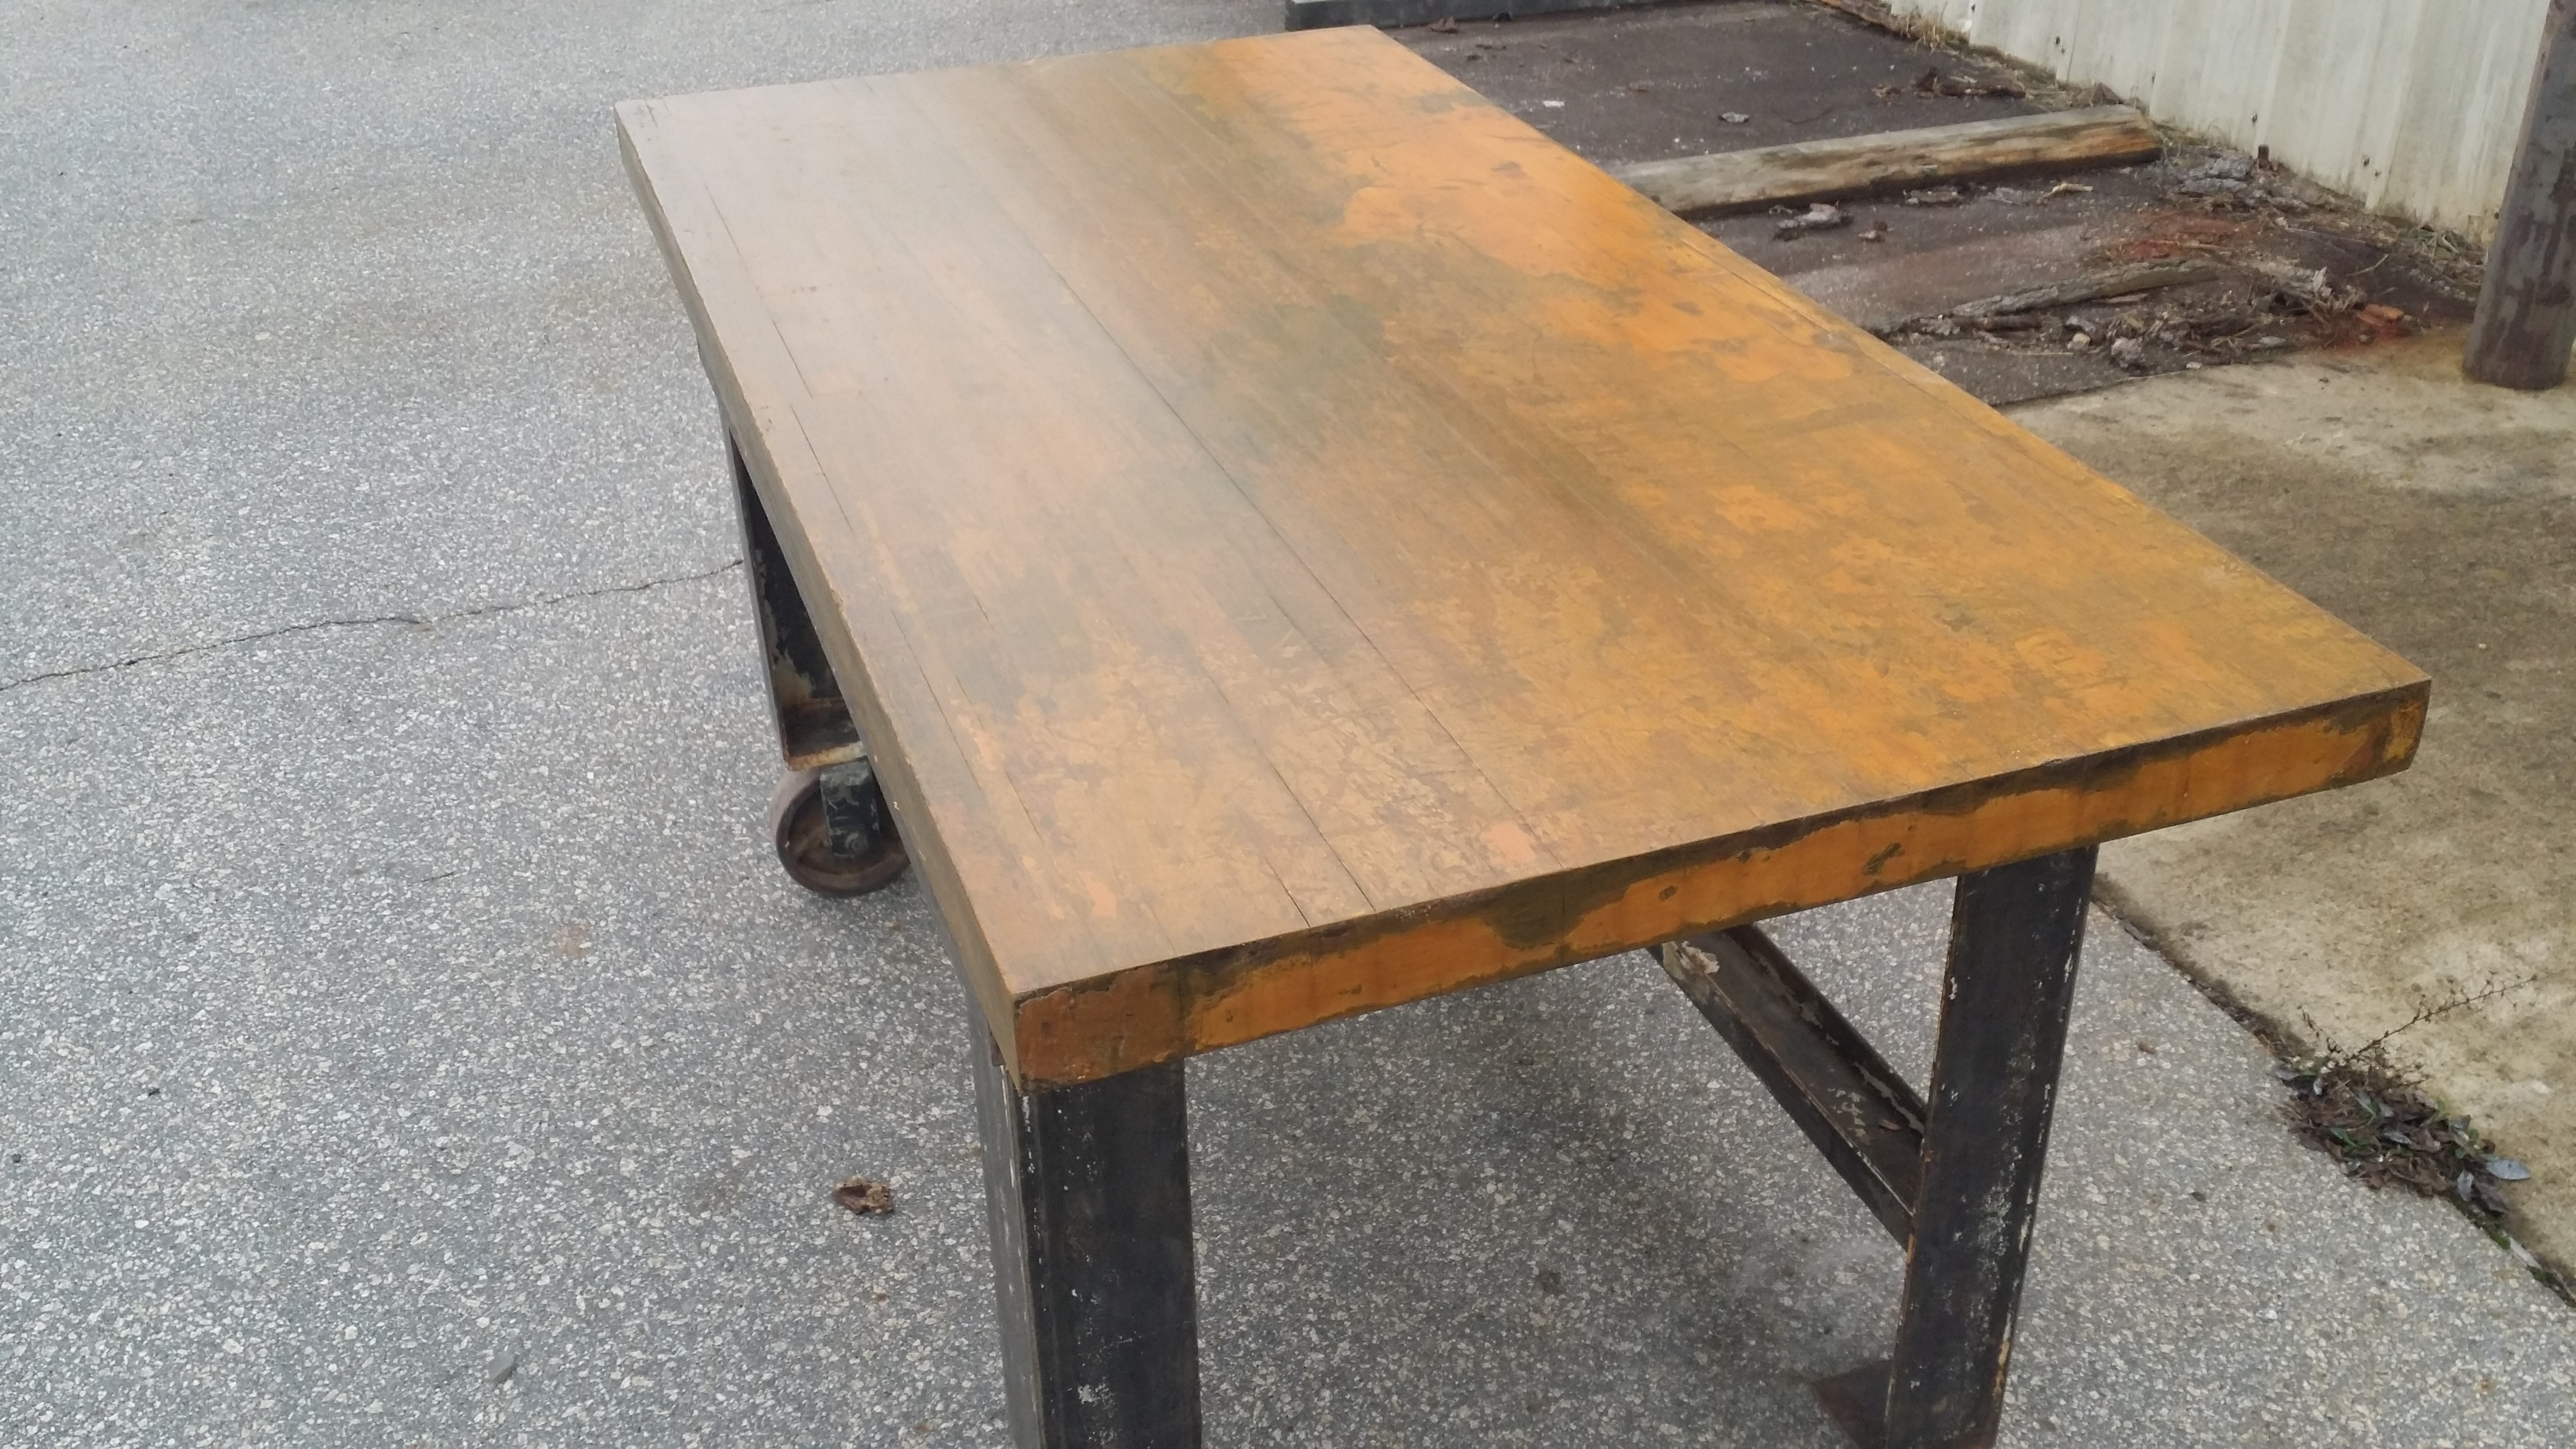 reveal etc vin desk style desks one yet industrial